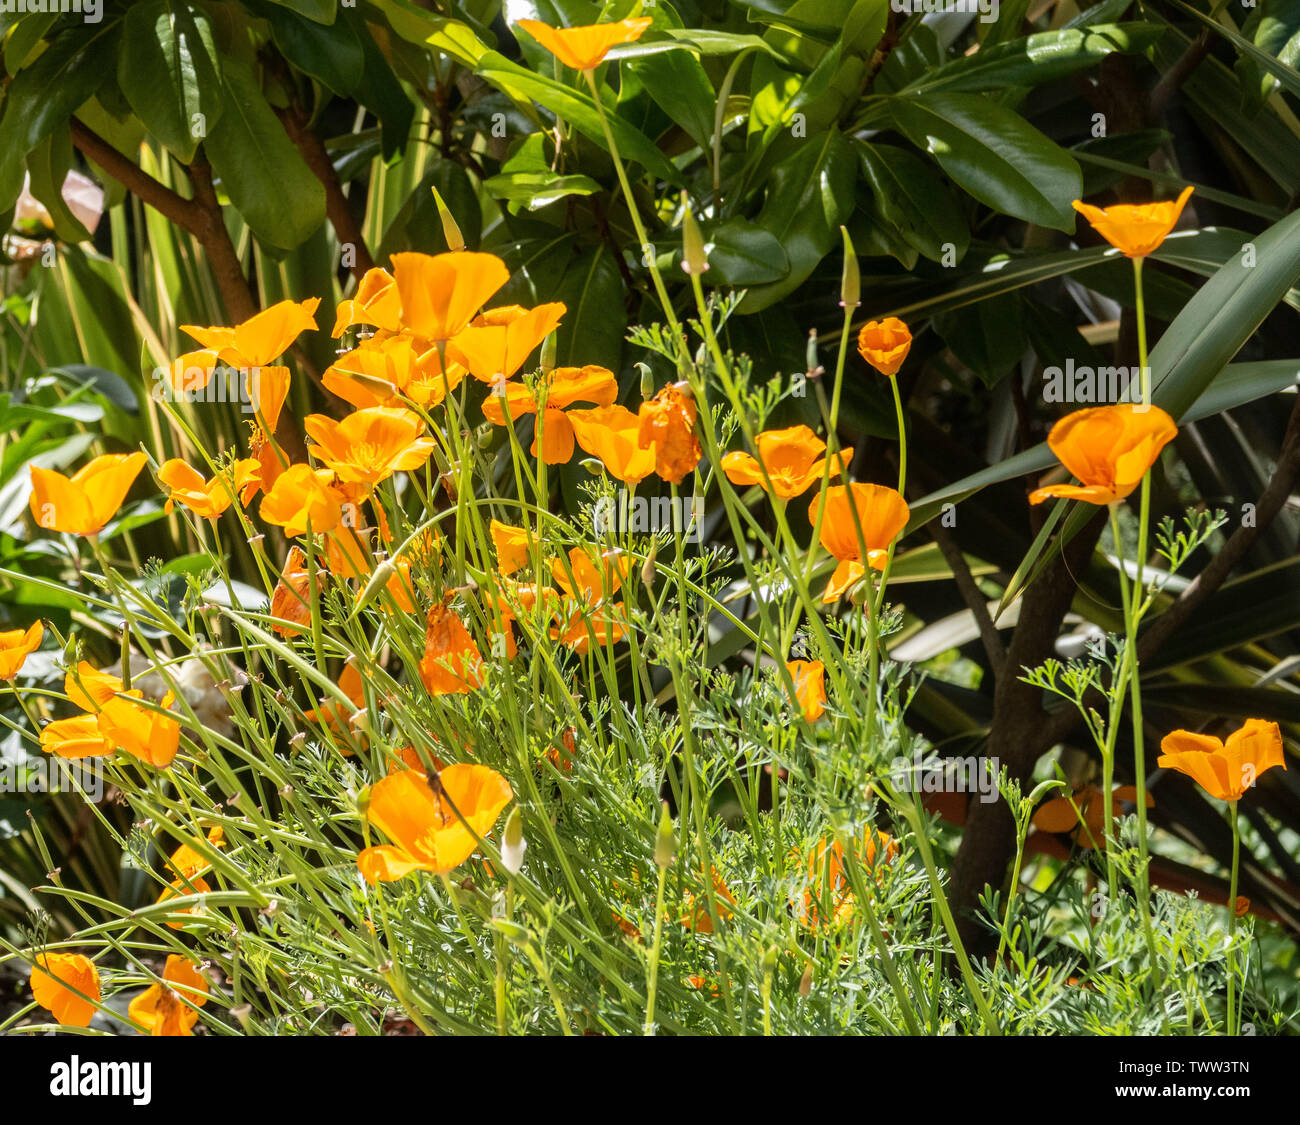 California Poppy 'Mission Bells', Eschscholzia californica, with a phormium behind - Stock Image